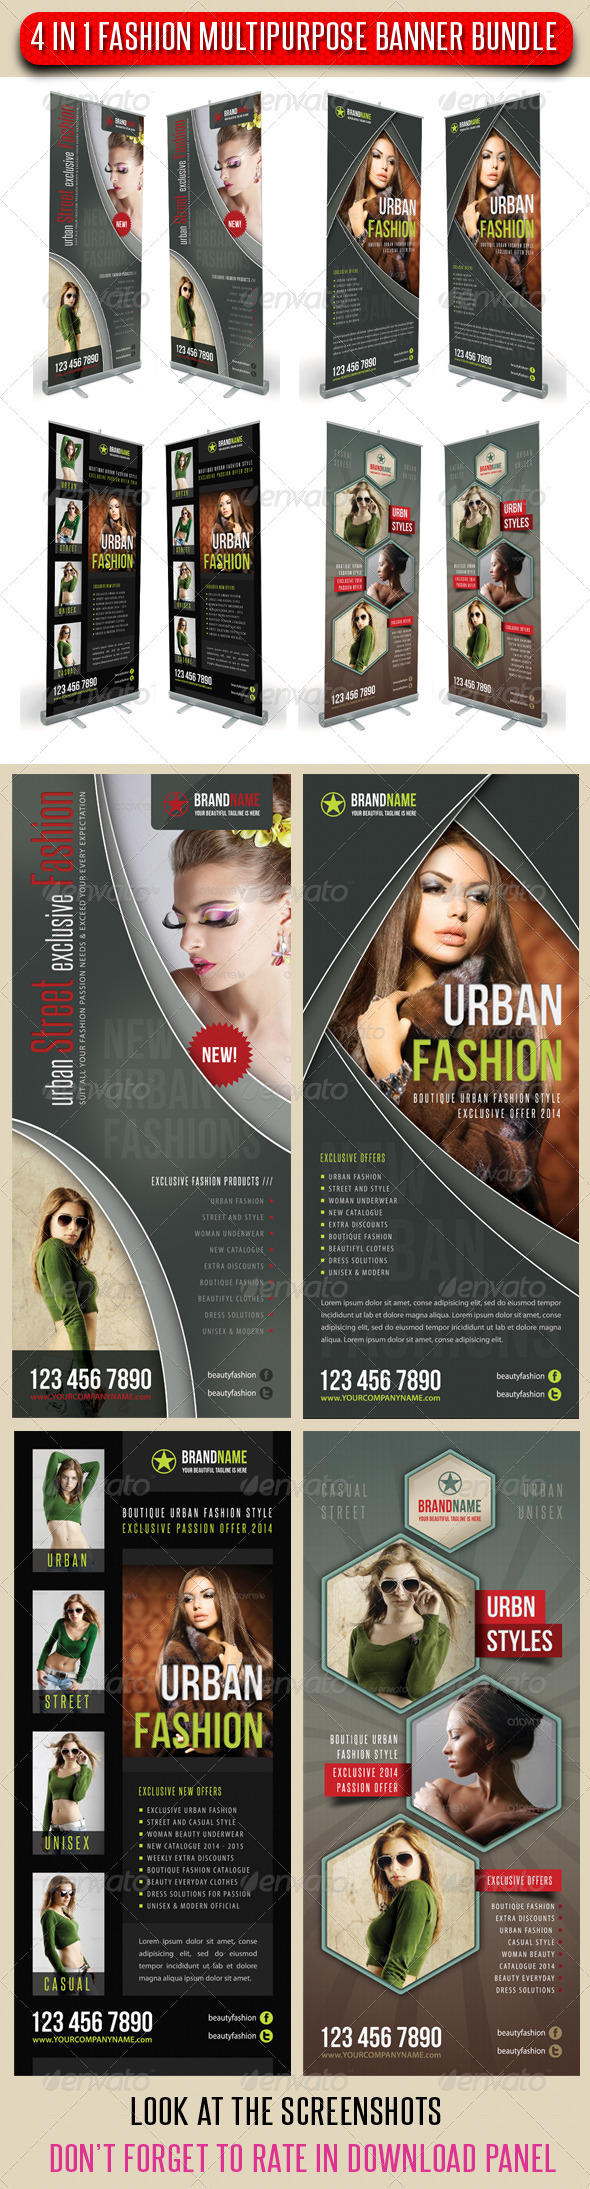 GraphicRiver 4 in 1 Fashion Multipurpose Banner Bundle 07 6734179